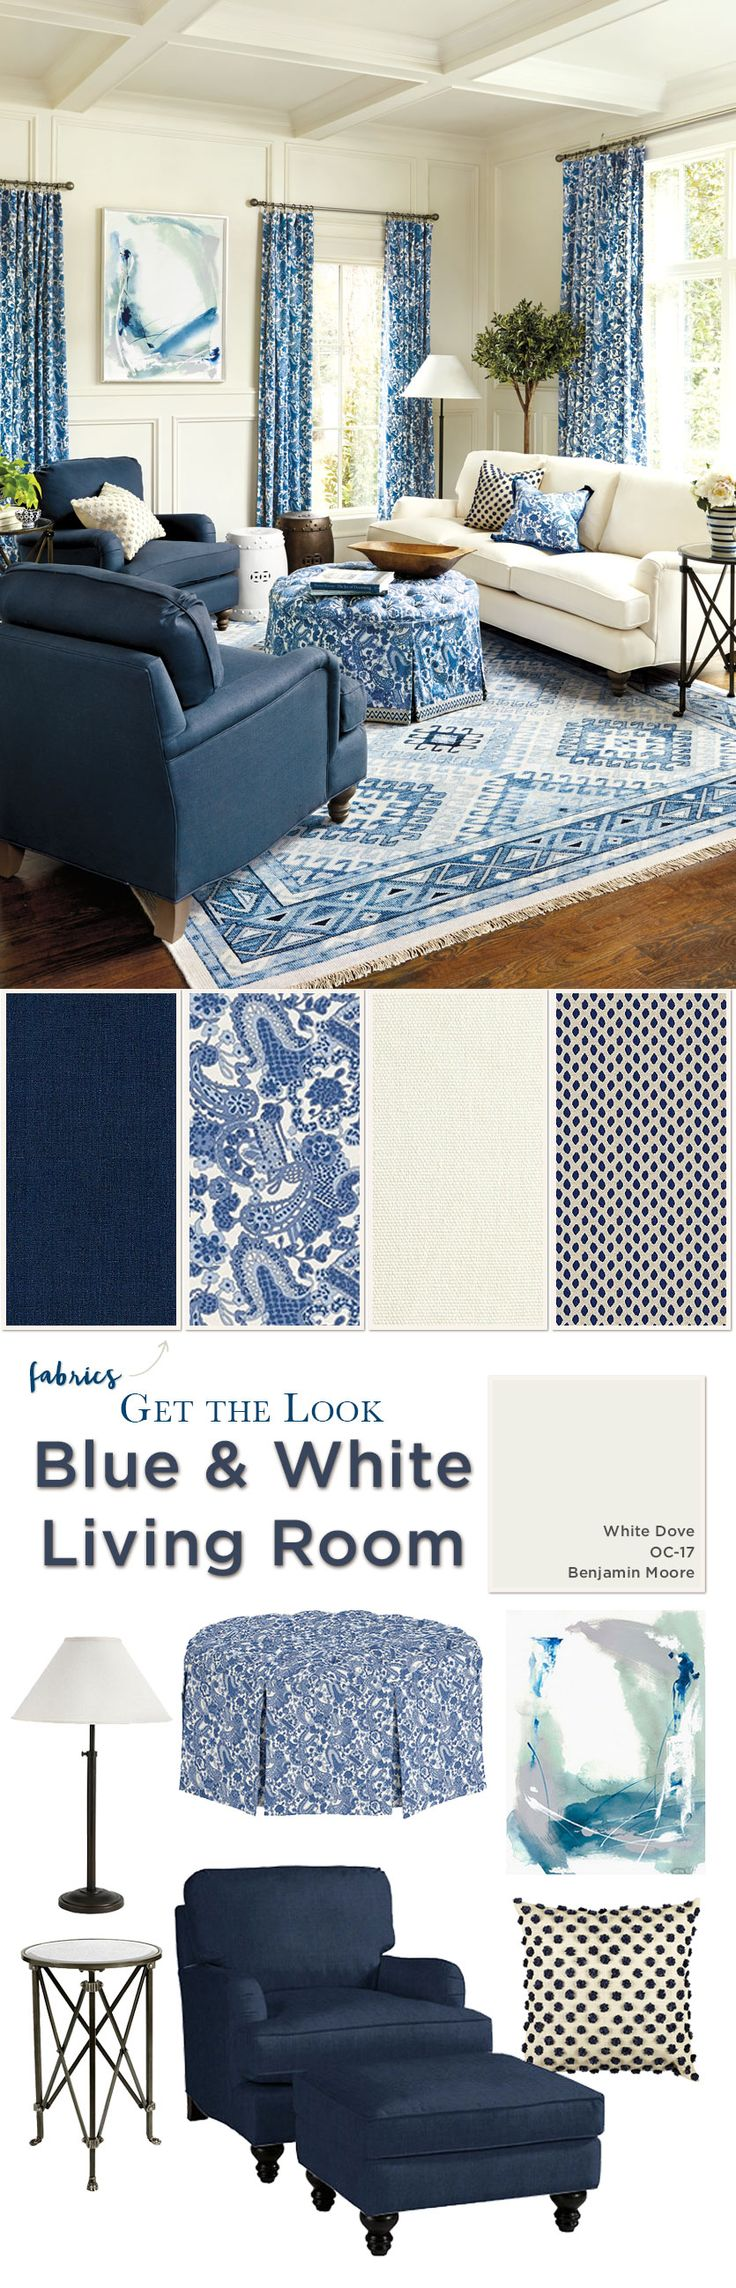 White living room decoration - Create A Blue White Living Room